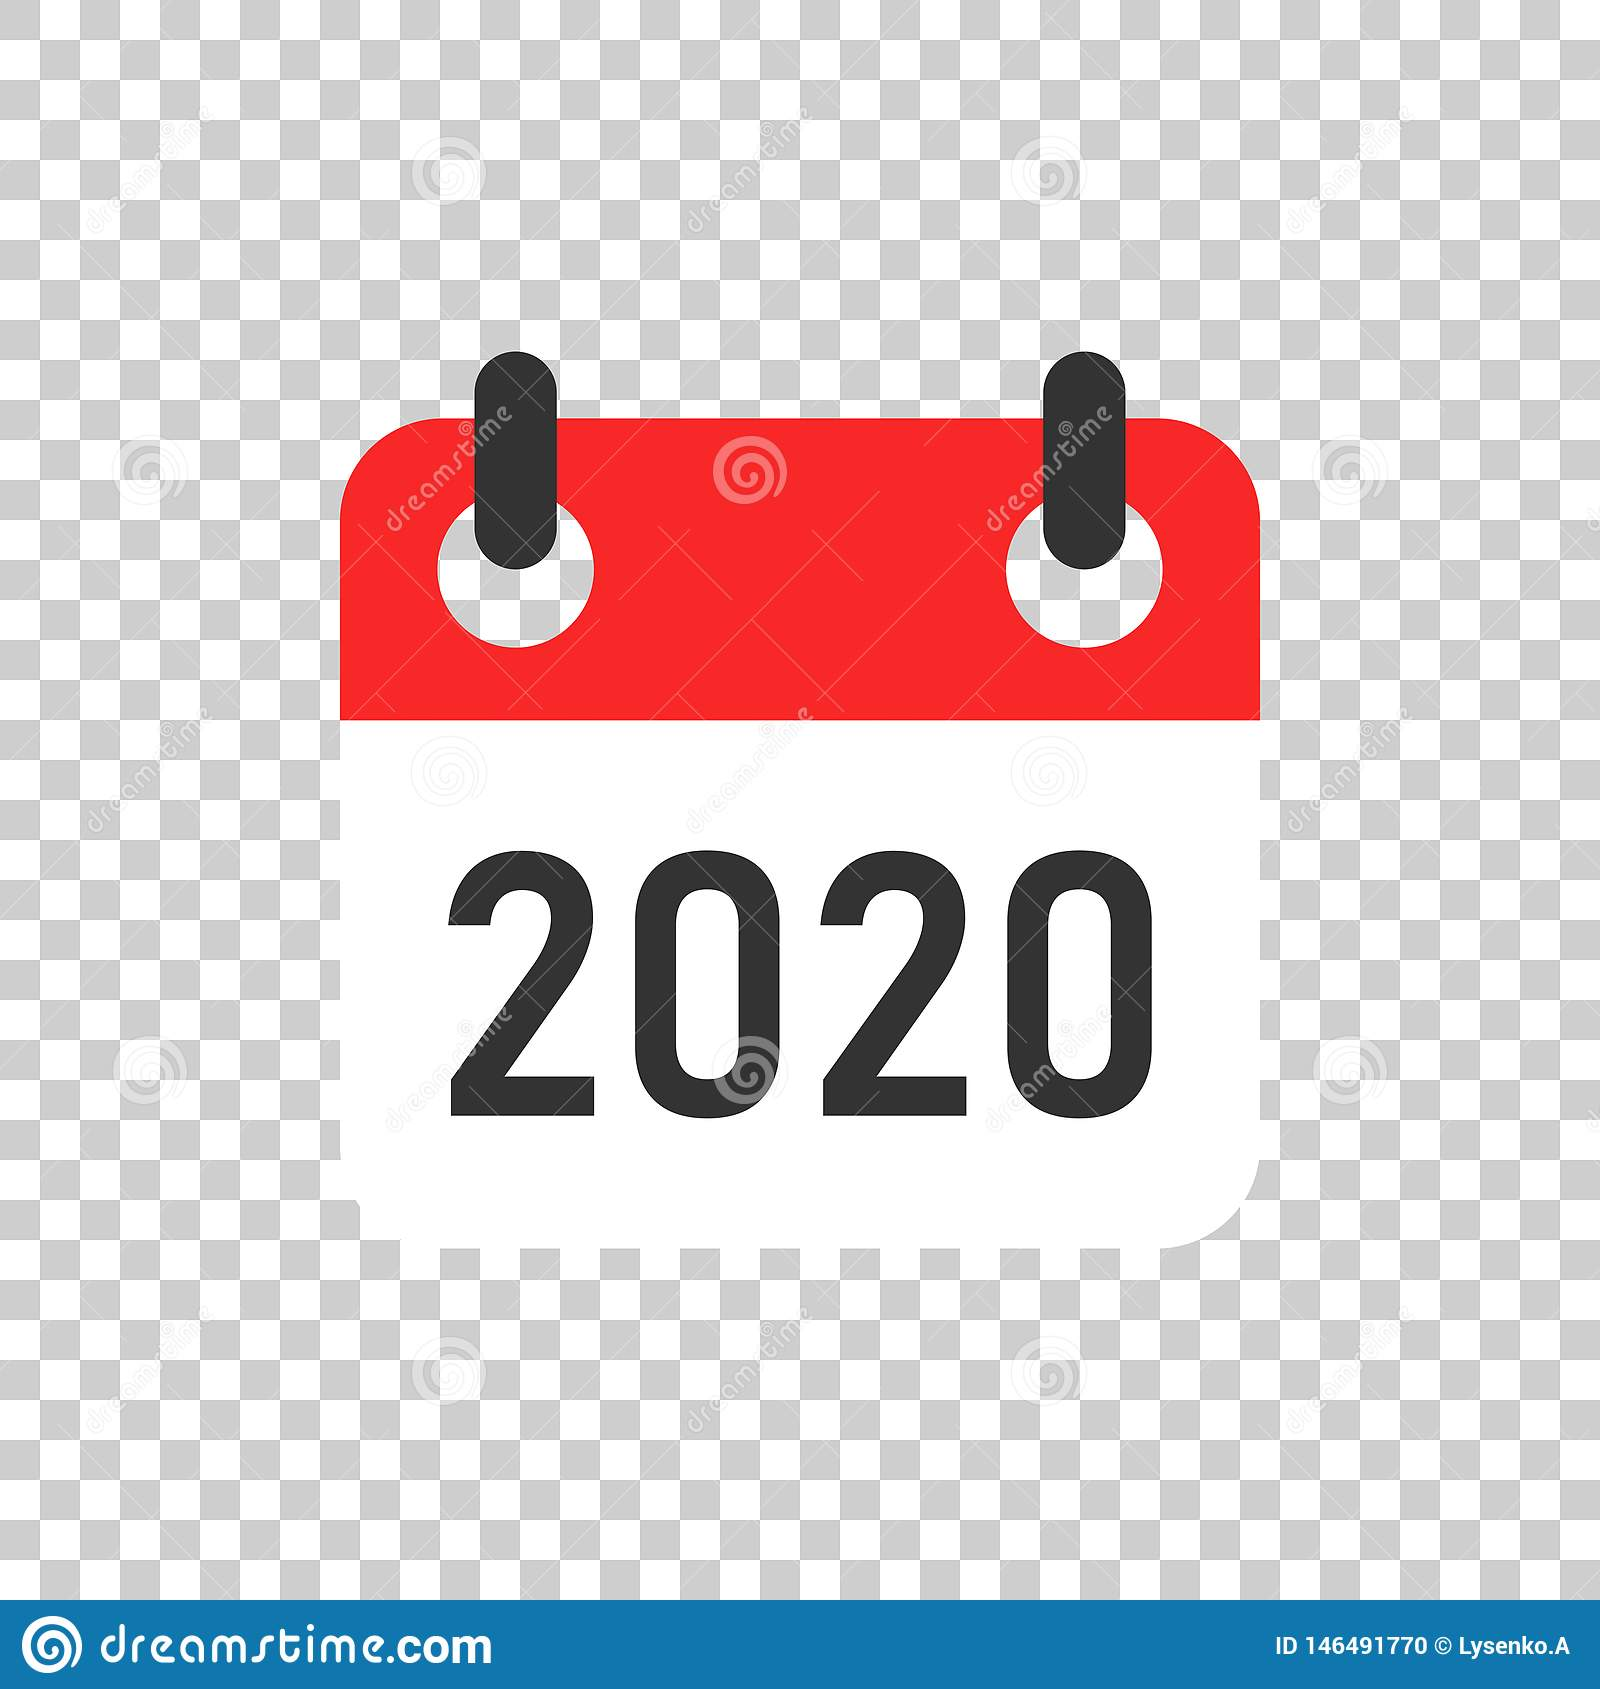 Calendar 2020 Organizer Icon In Transparent Style. Appointment